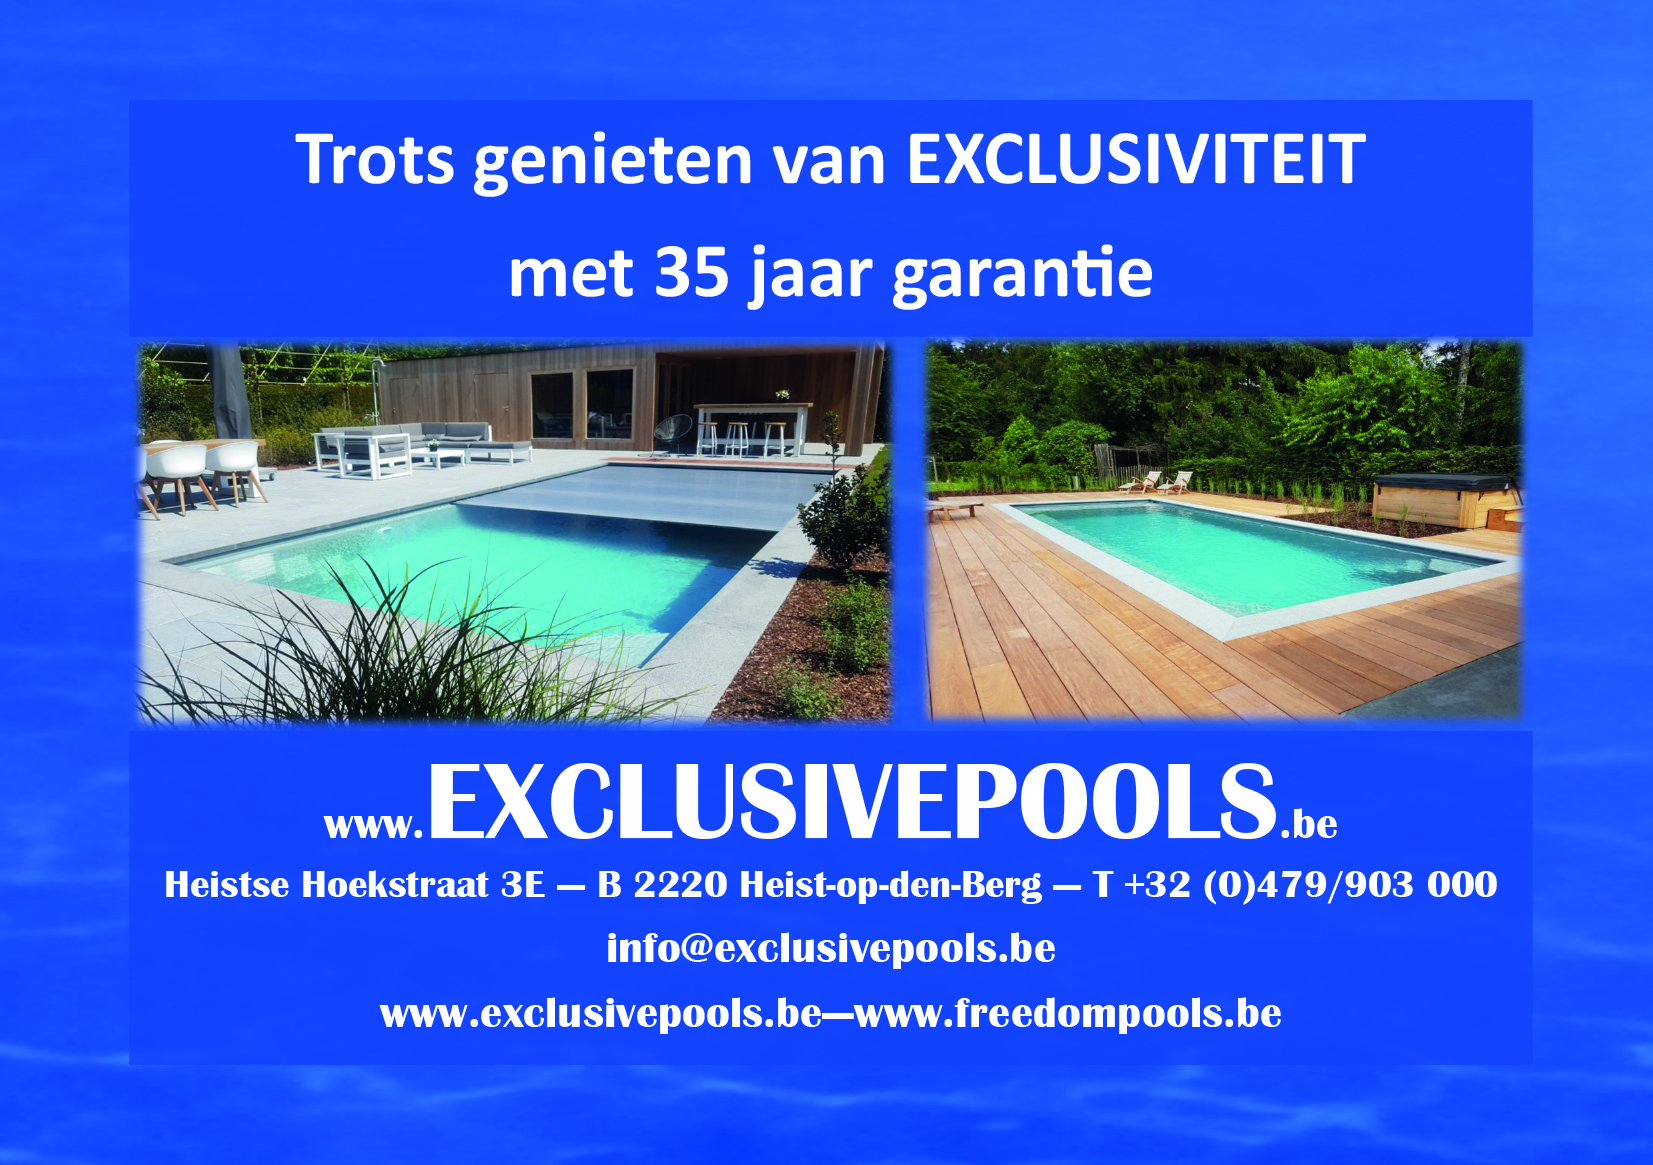 sponsorsvanaf250/Exclusive_pools.jpg